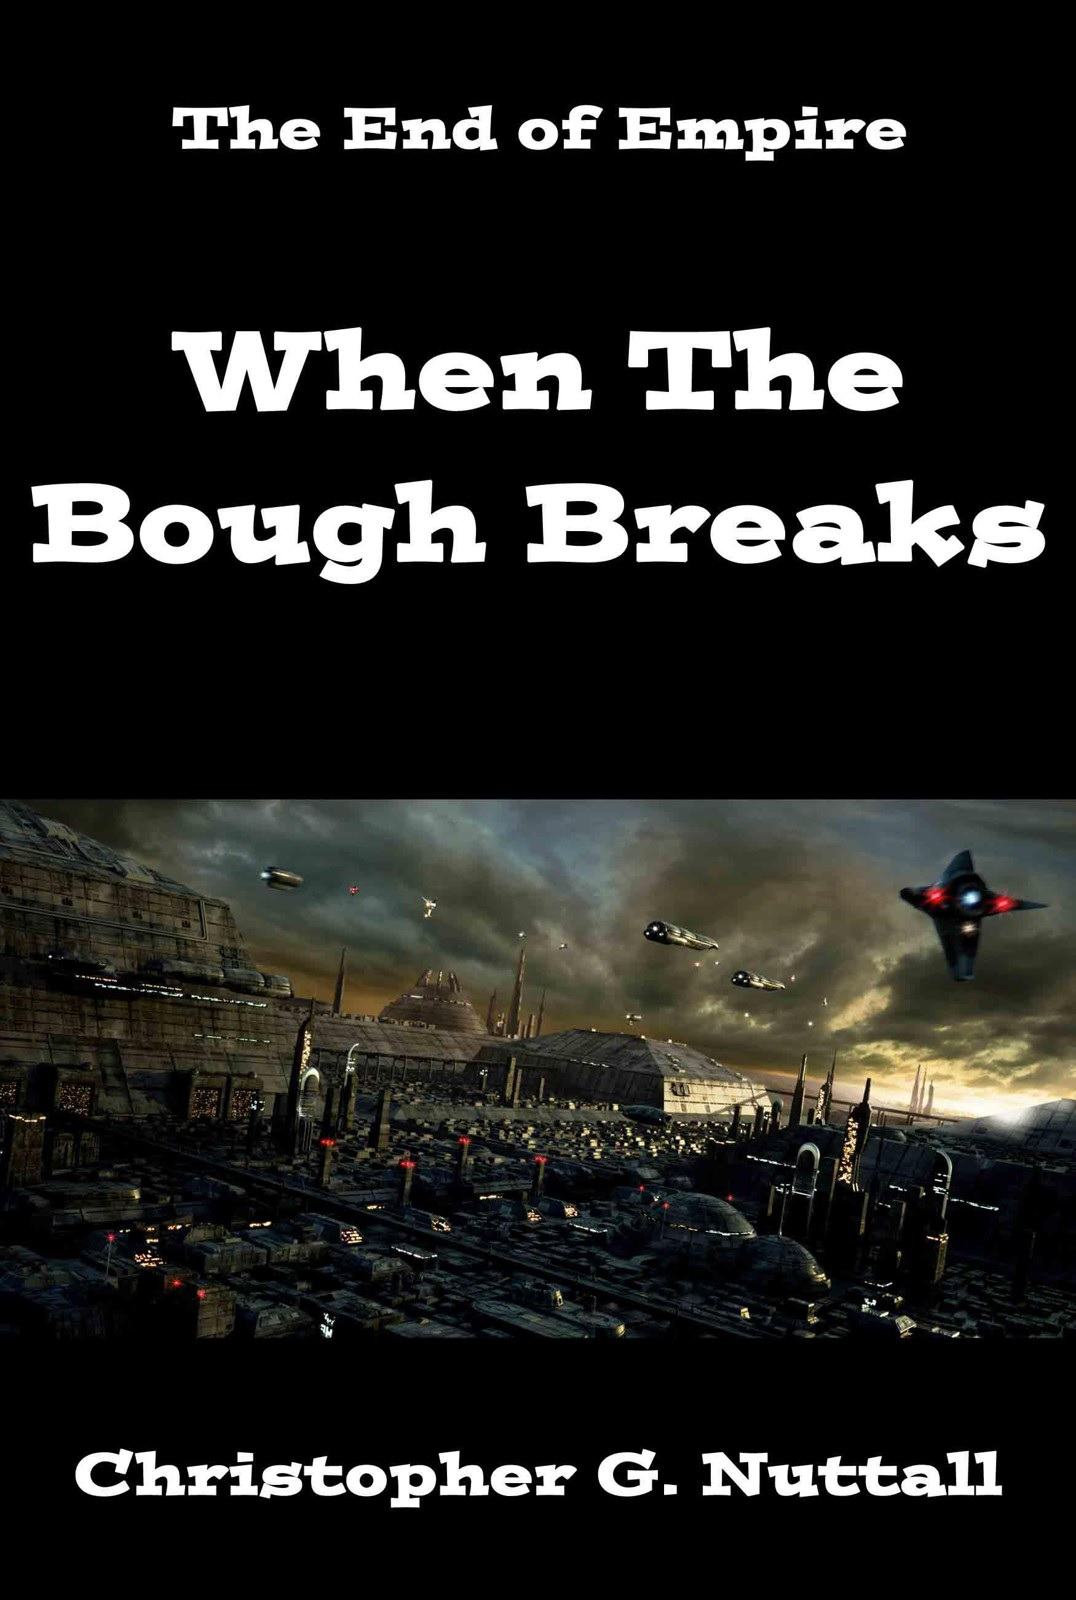 When The Bough Breaks:  Good book but very depressing and feels a bit like a detour from the main story of the series.